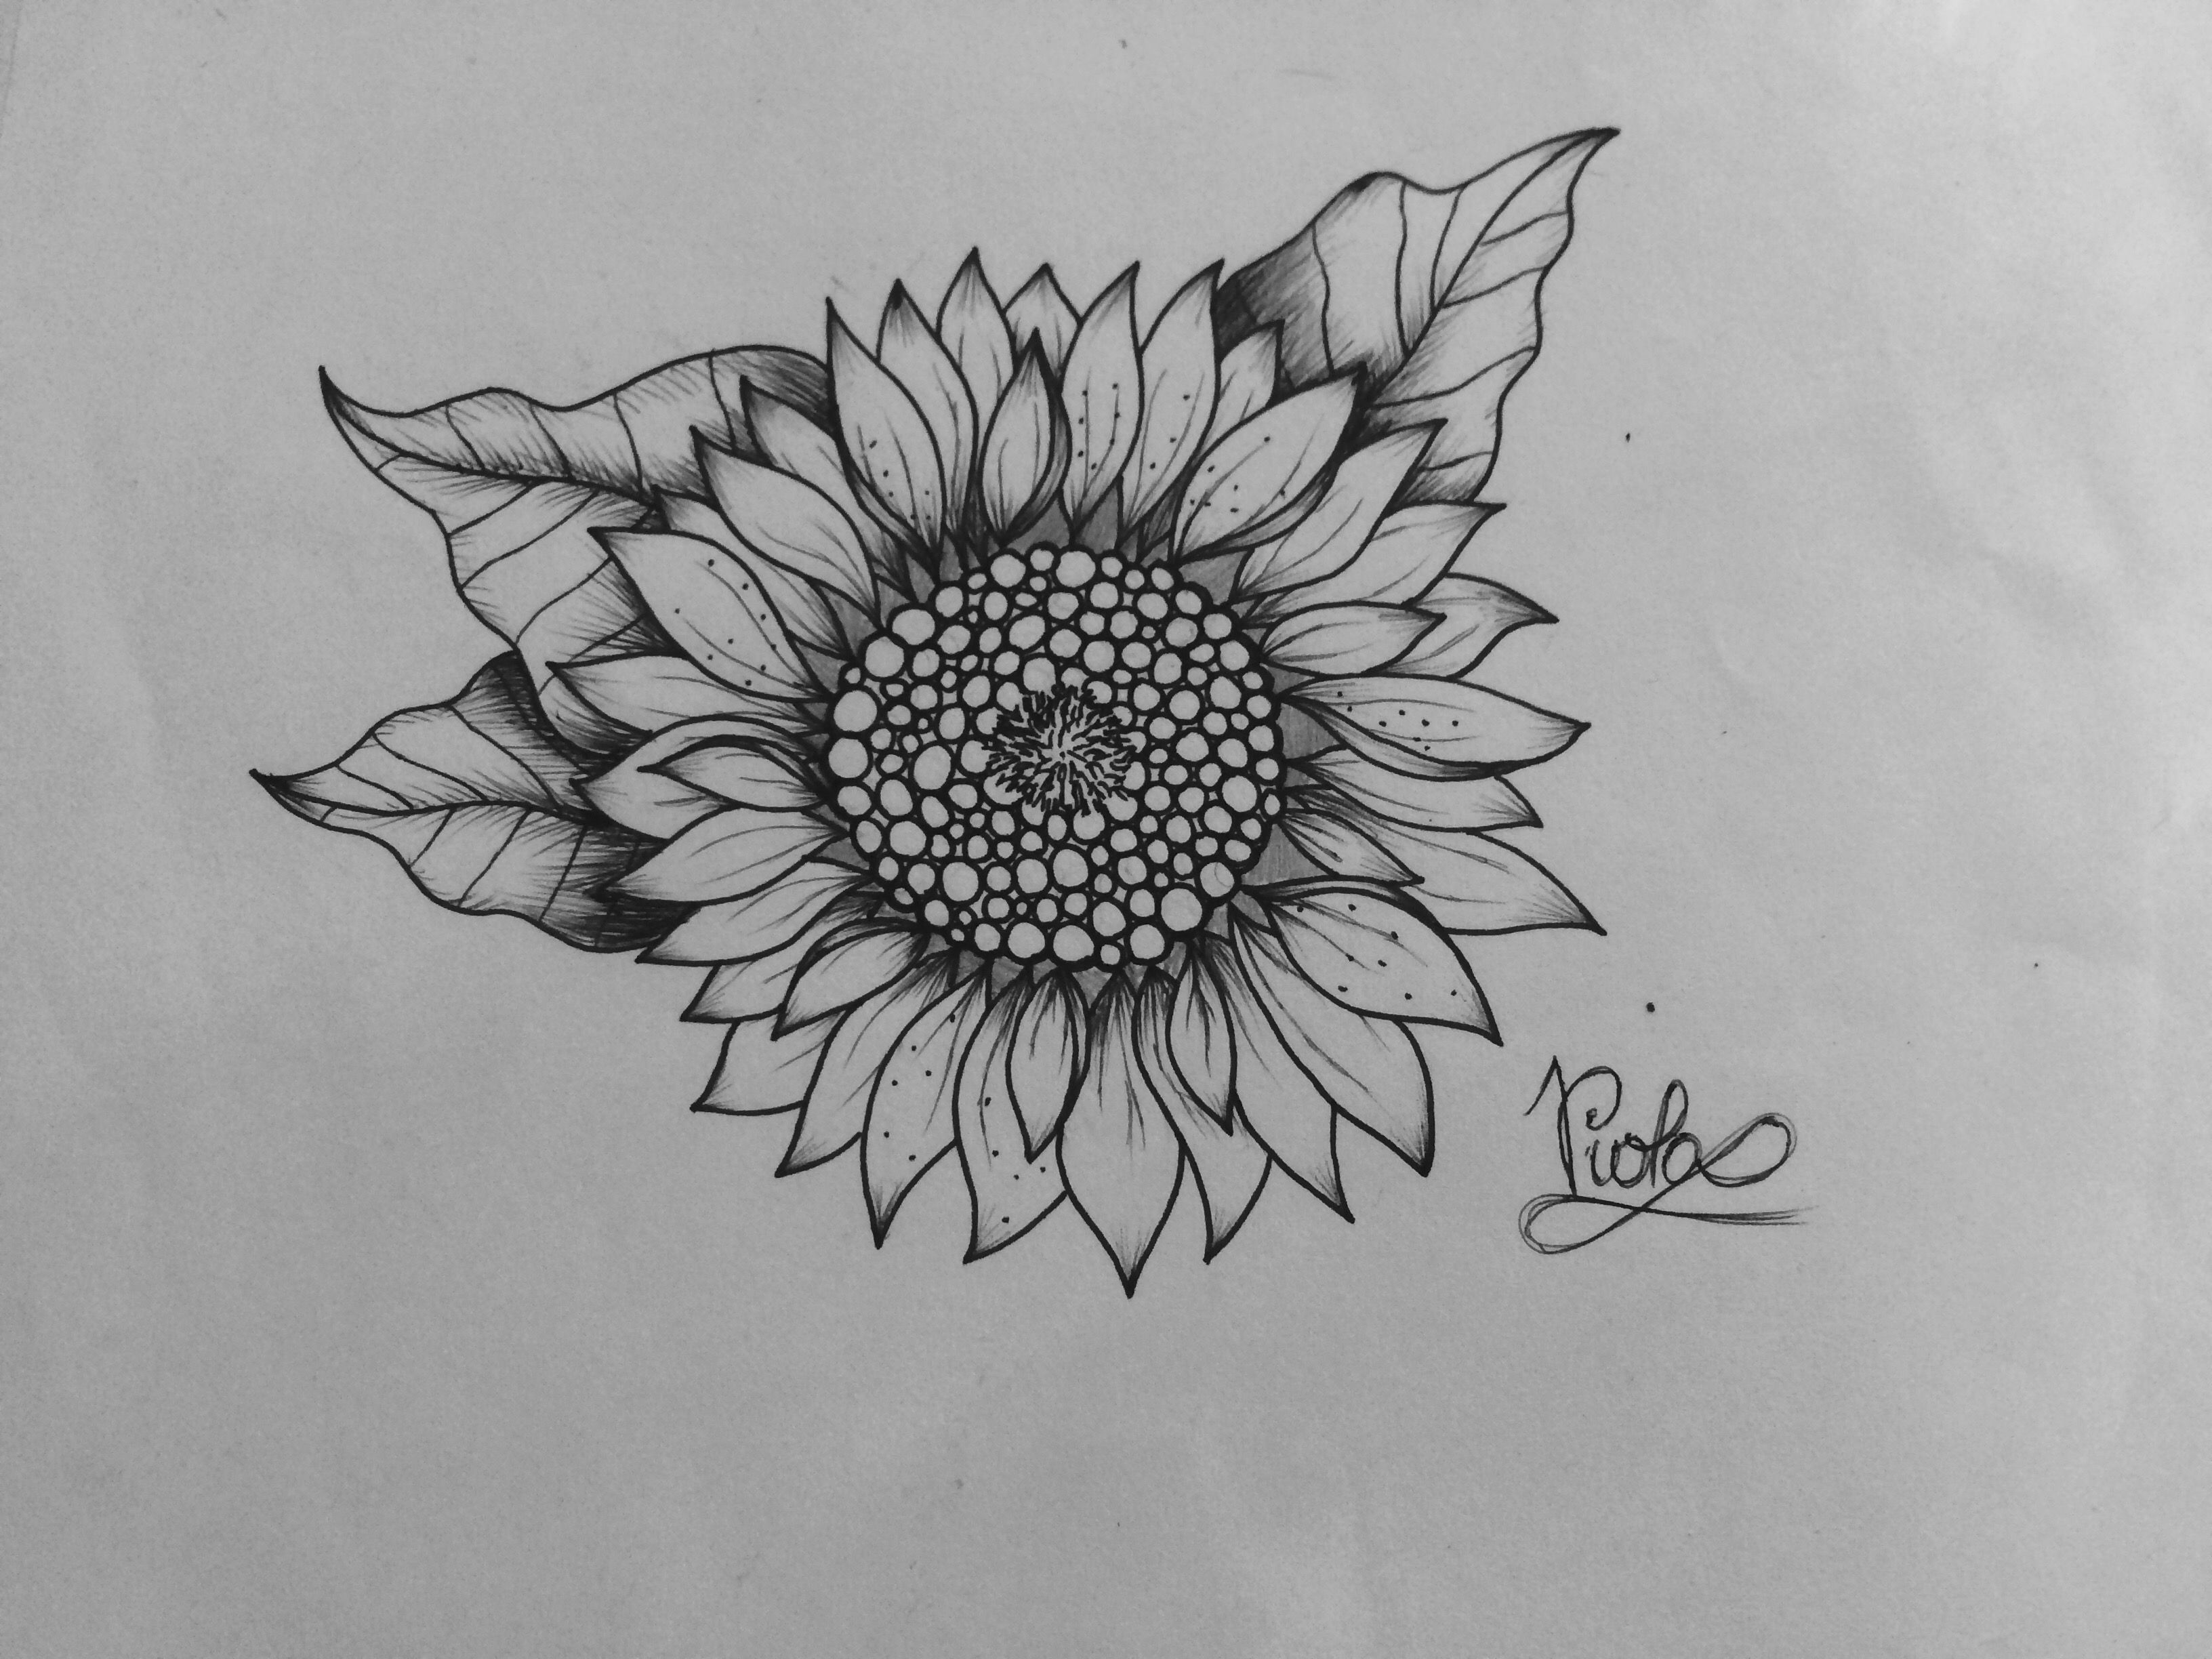 how to draw sunflowers how to draw a sunflower easy step by step drawing guides sunflowers to how draw